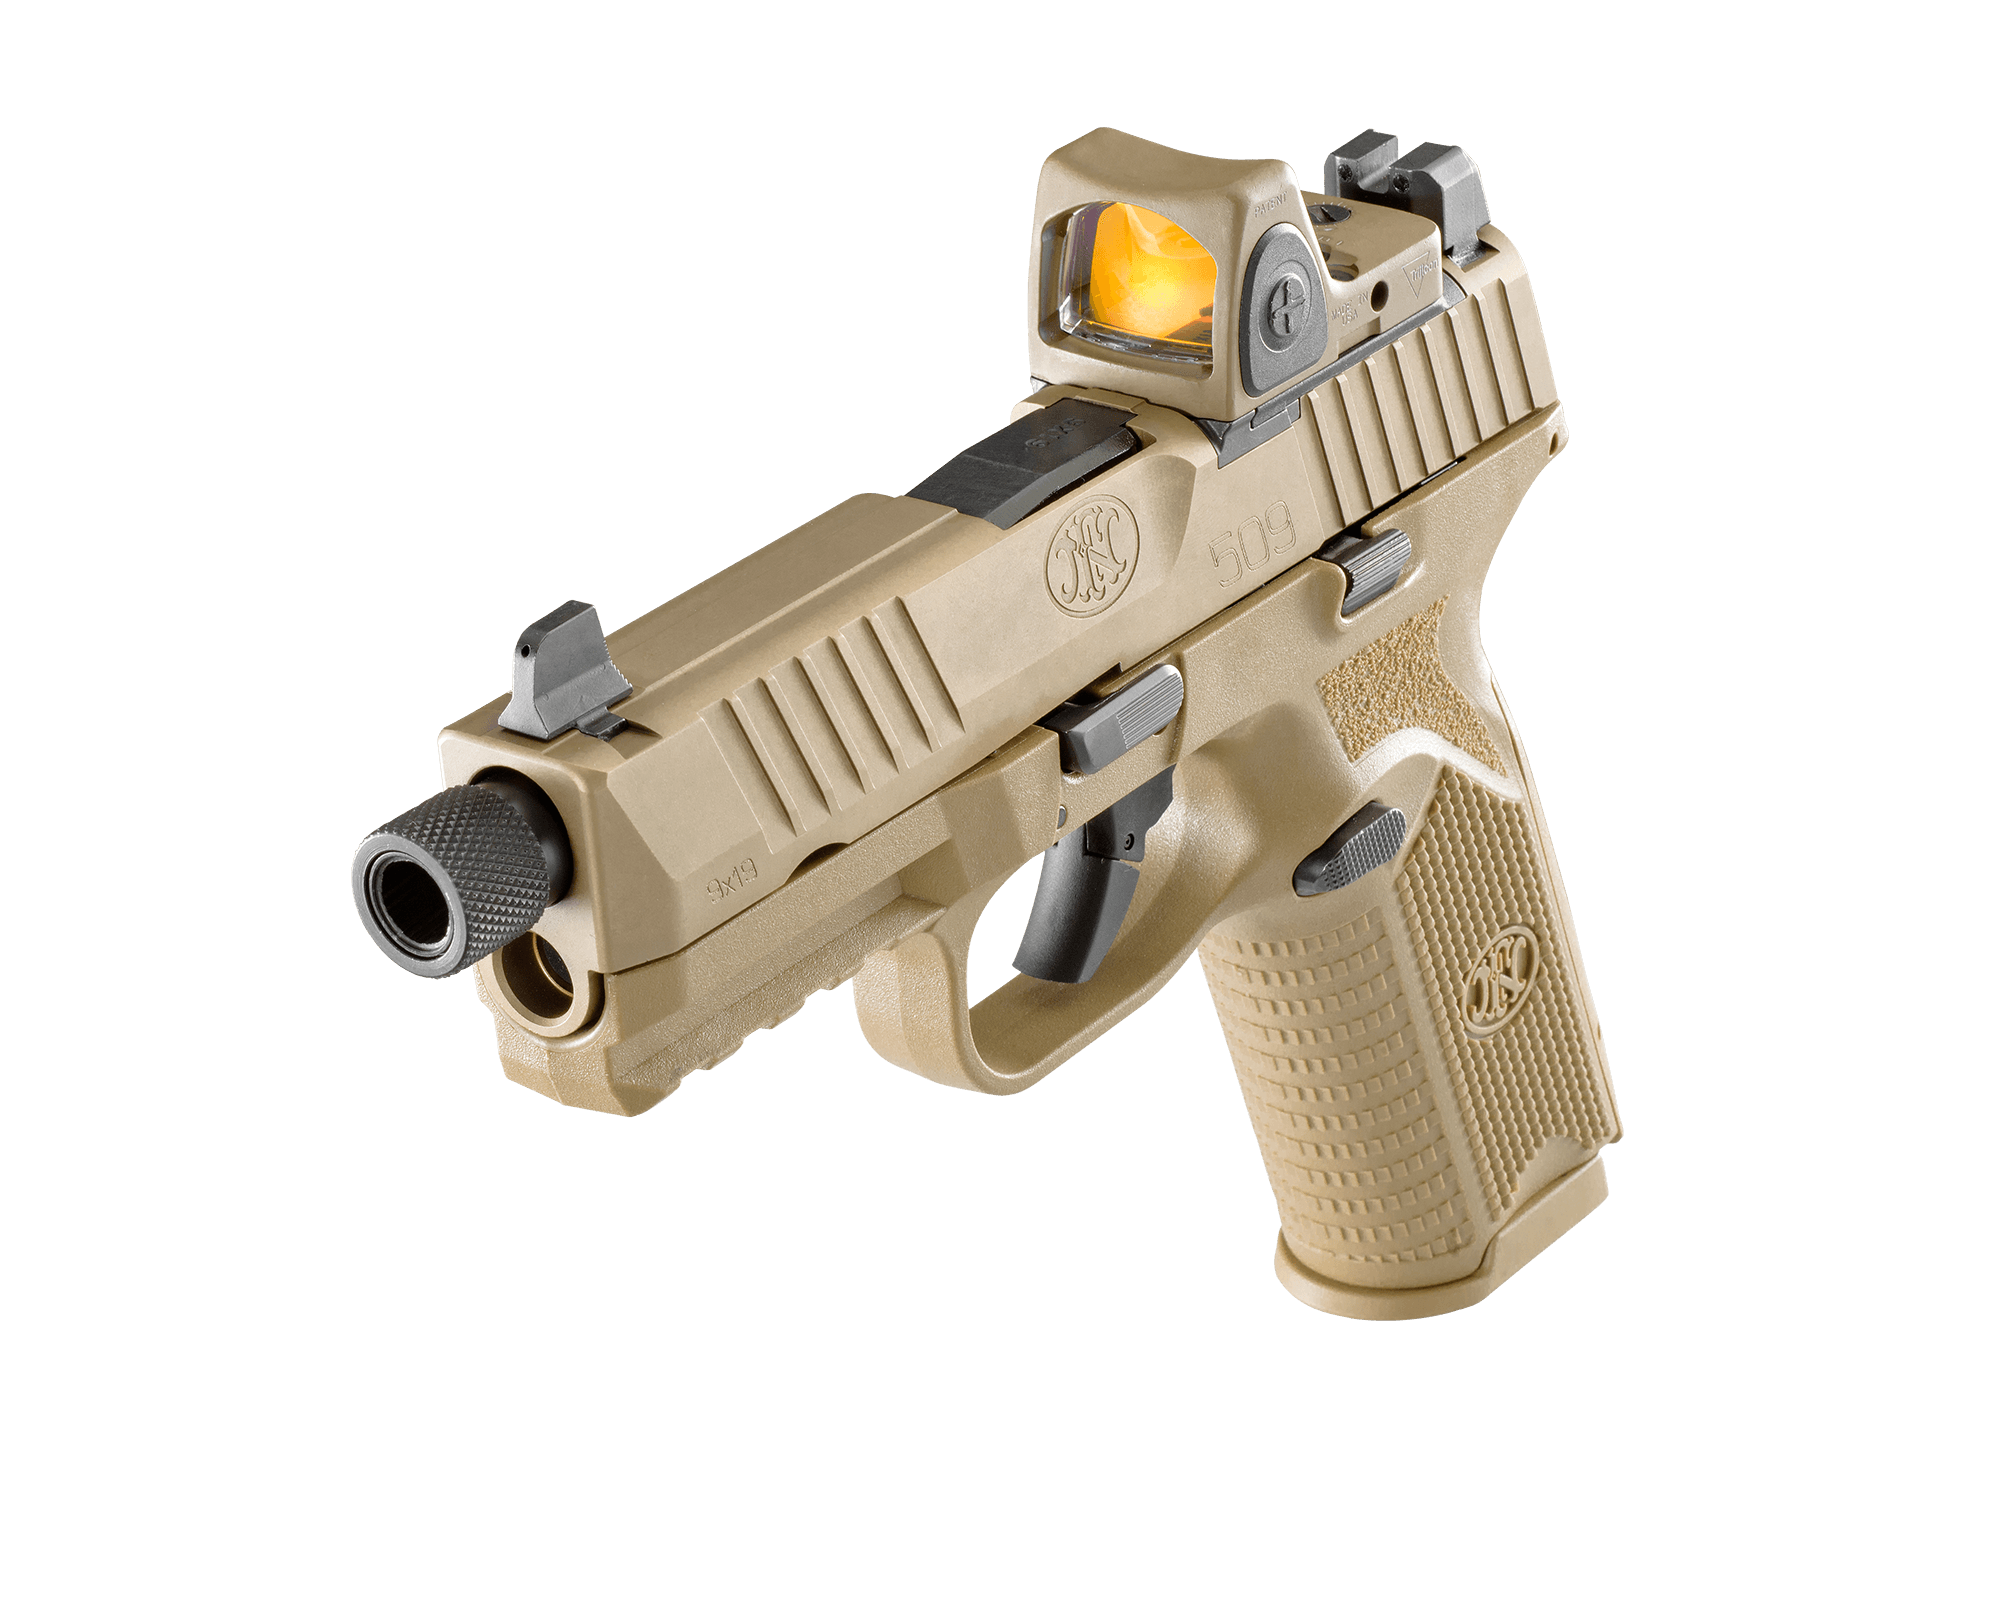 FN 509 Tactical 9mm Pistol with Innovative Patent-Pending Low-Profile Optics Mounting System